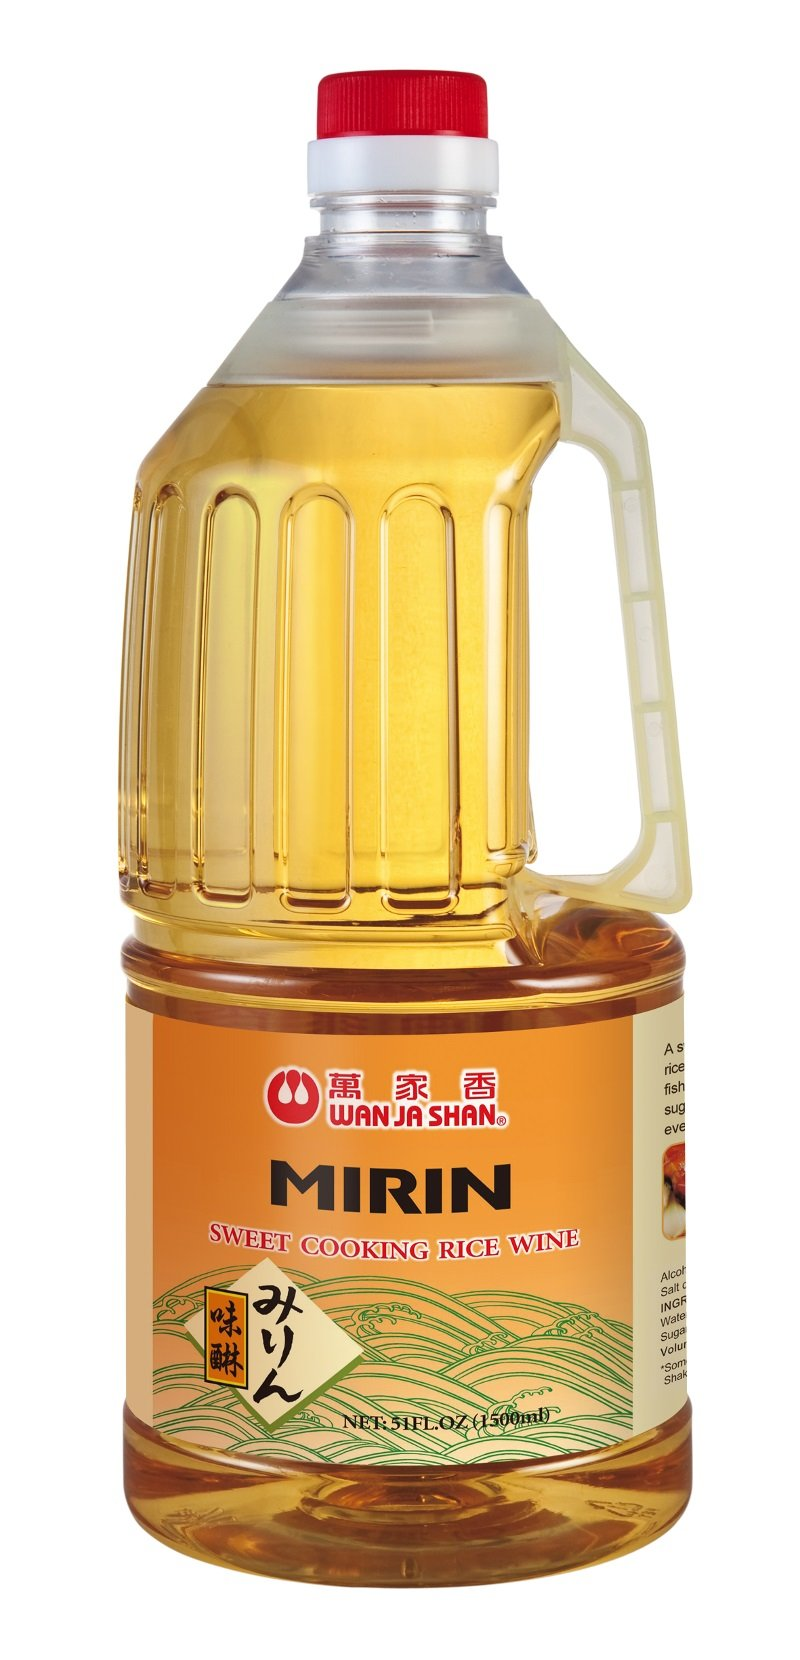 Wan Ja Shan Sweet Cooking Rice Wine (Mirin) 50 oz